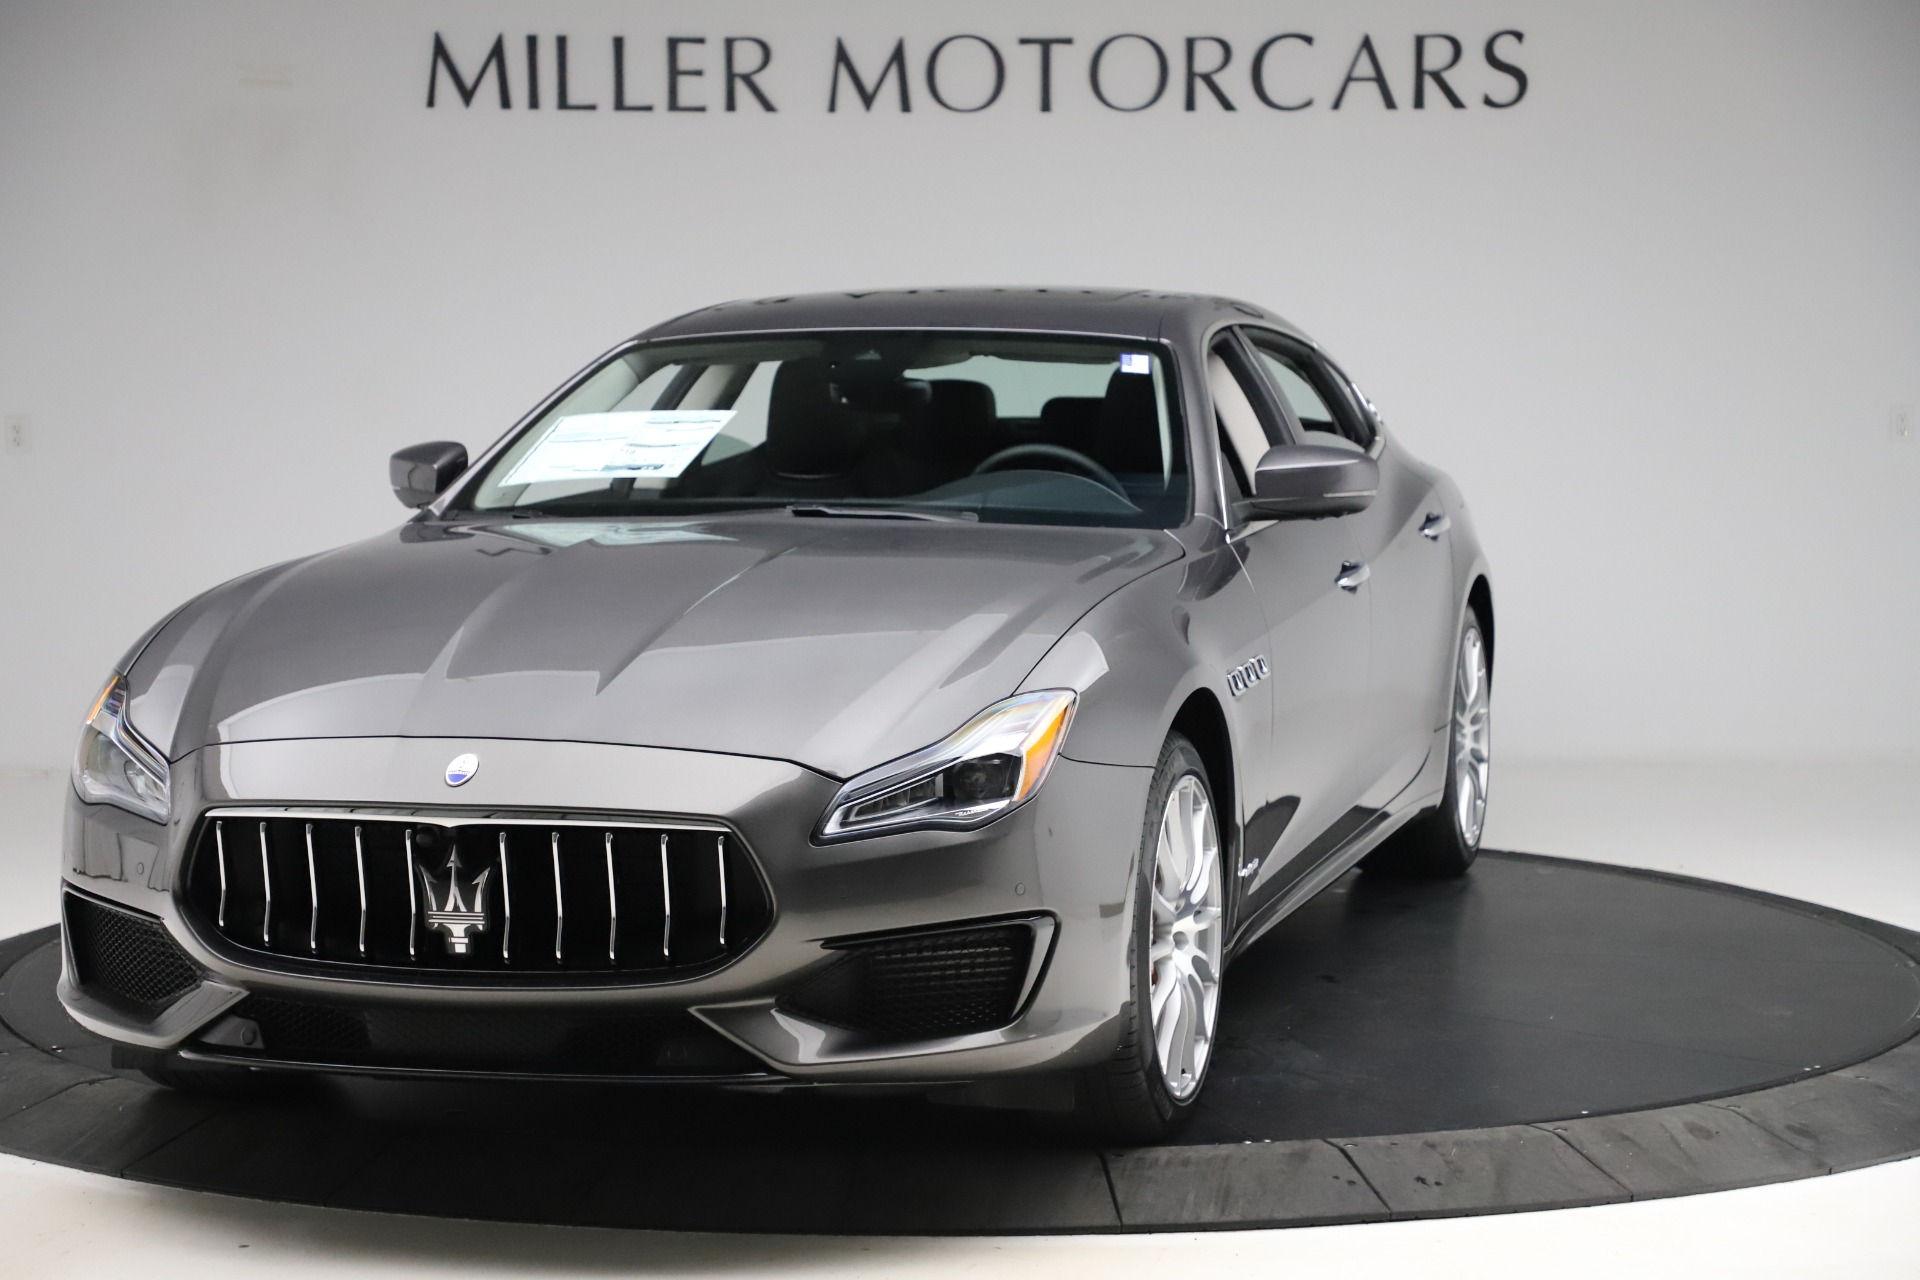 New 2020 Maserati Quattroporte S Q4 GranSport for sale $121,885 at Aston Martin of Greenwich in Greenwich CT 06830 1